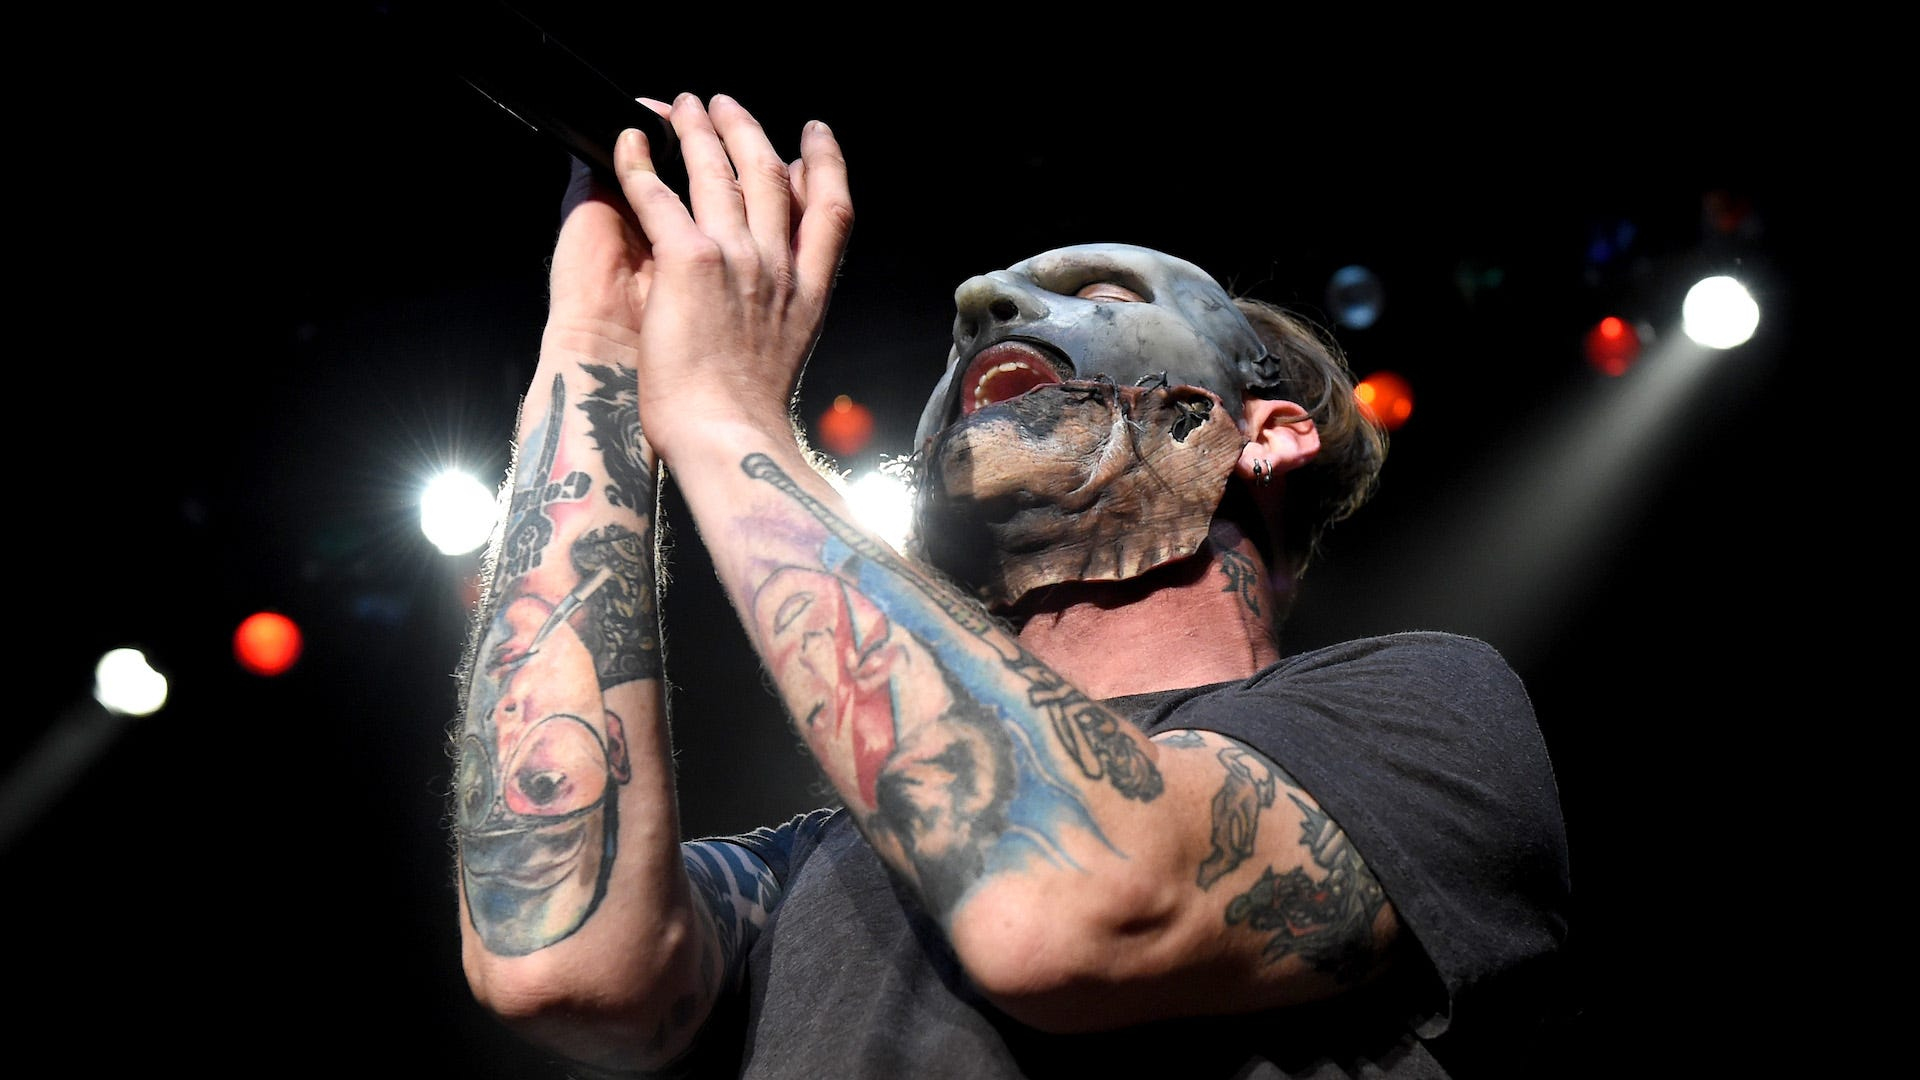 Slipknot's Corey Taylor shows off his most 'disturbing' mask yet